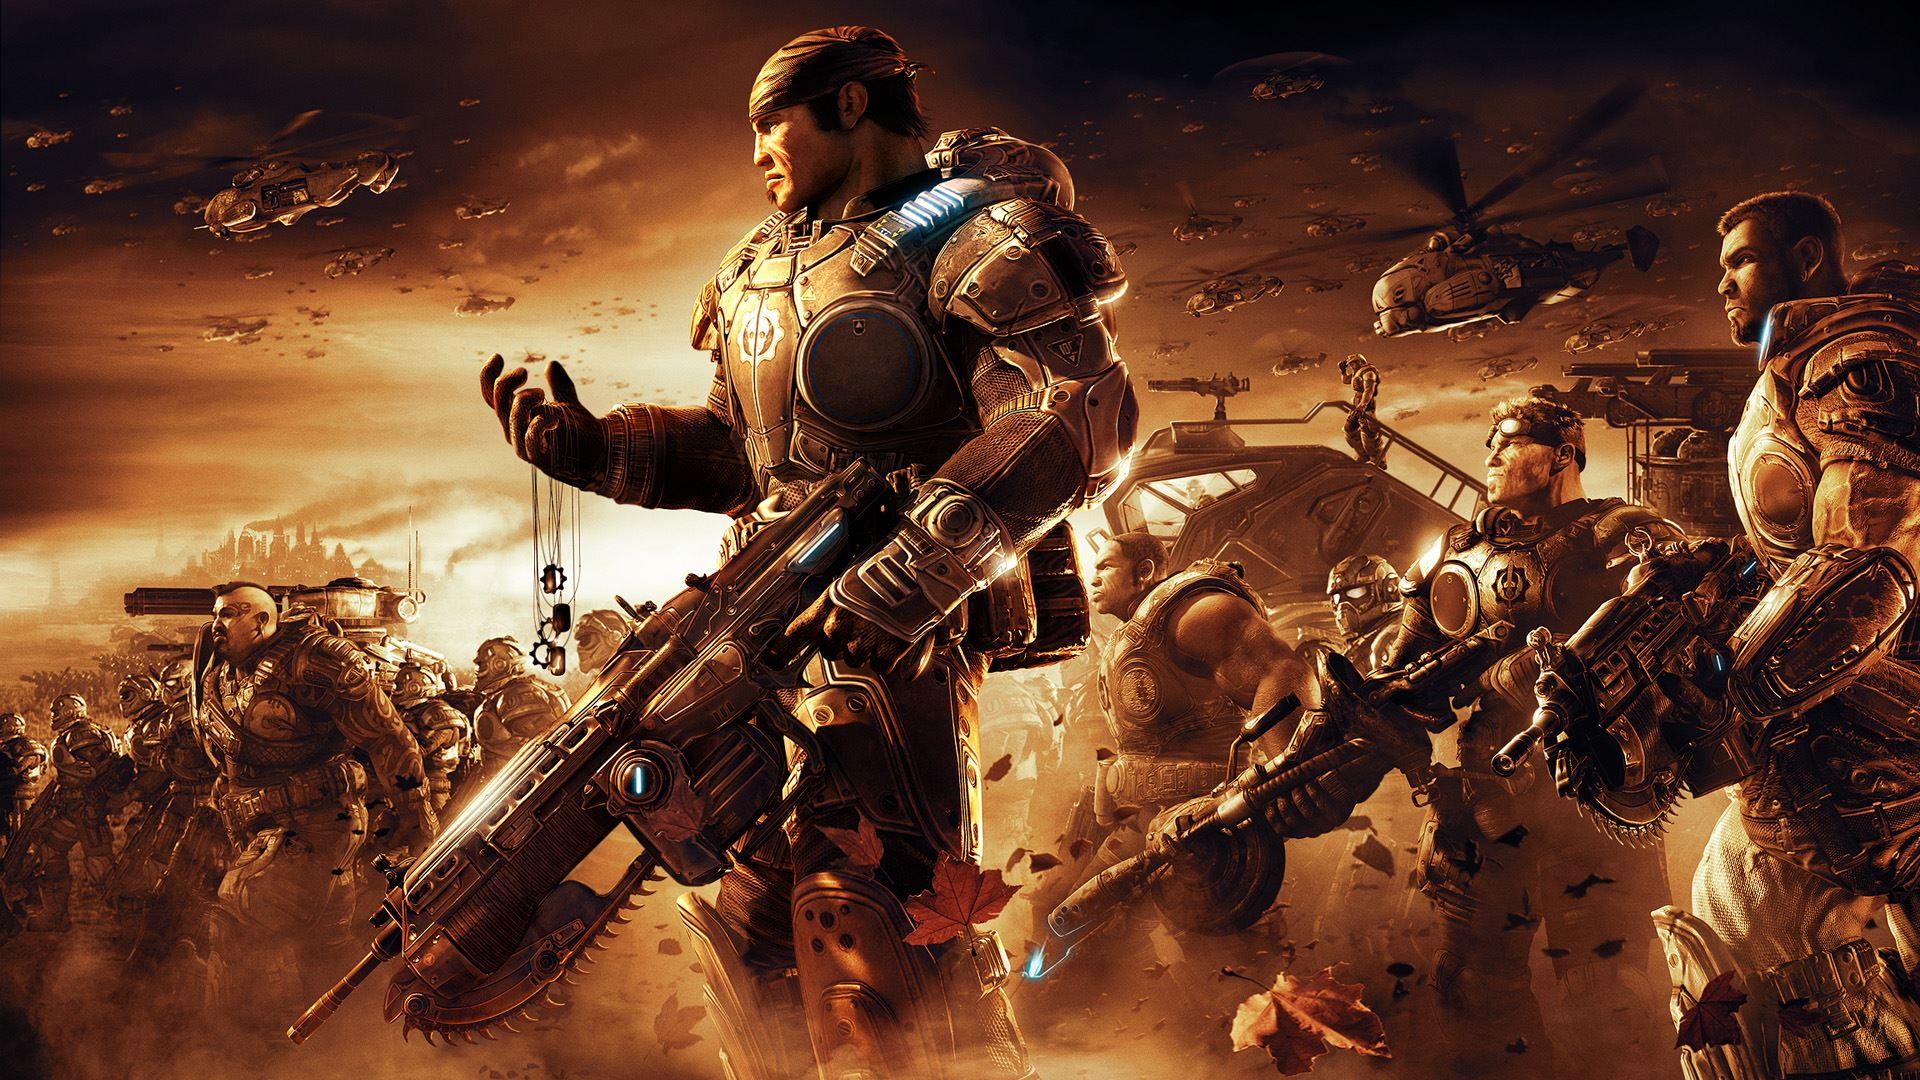 Gears Of War Live Action Film Adaptation Is On The Way